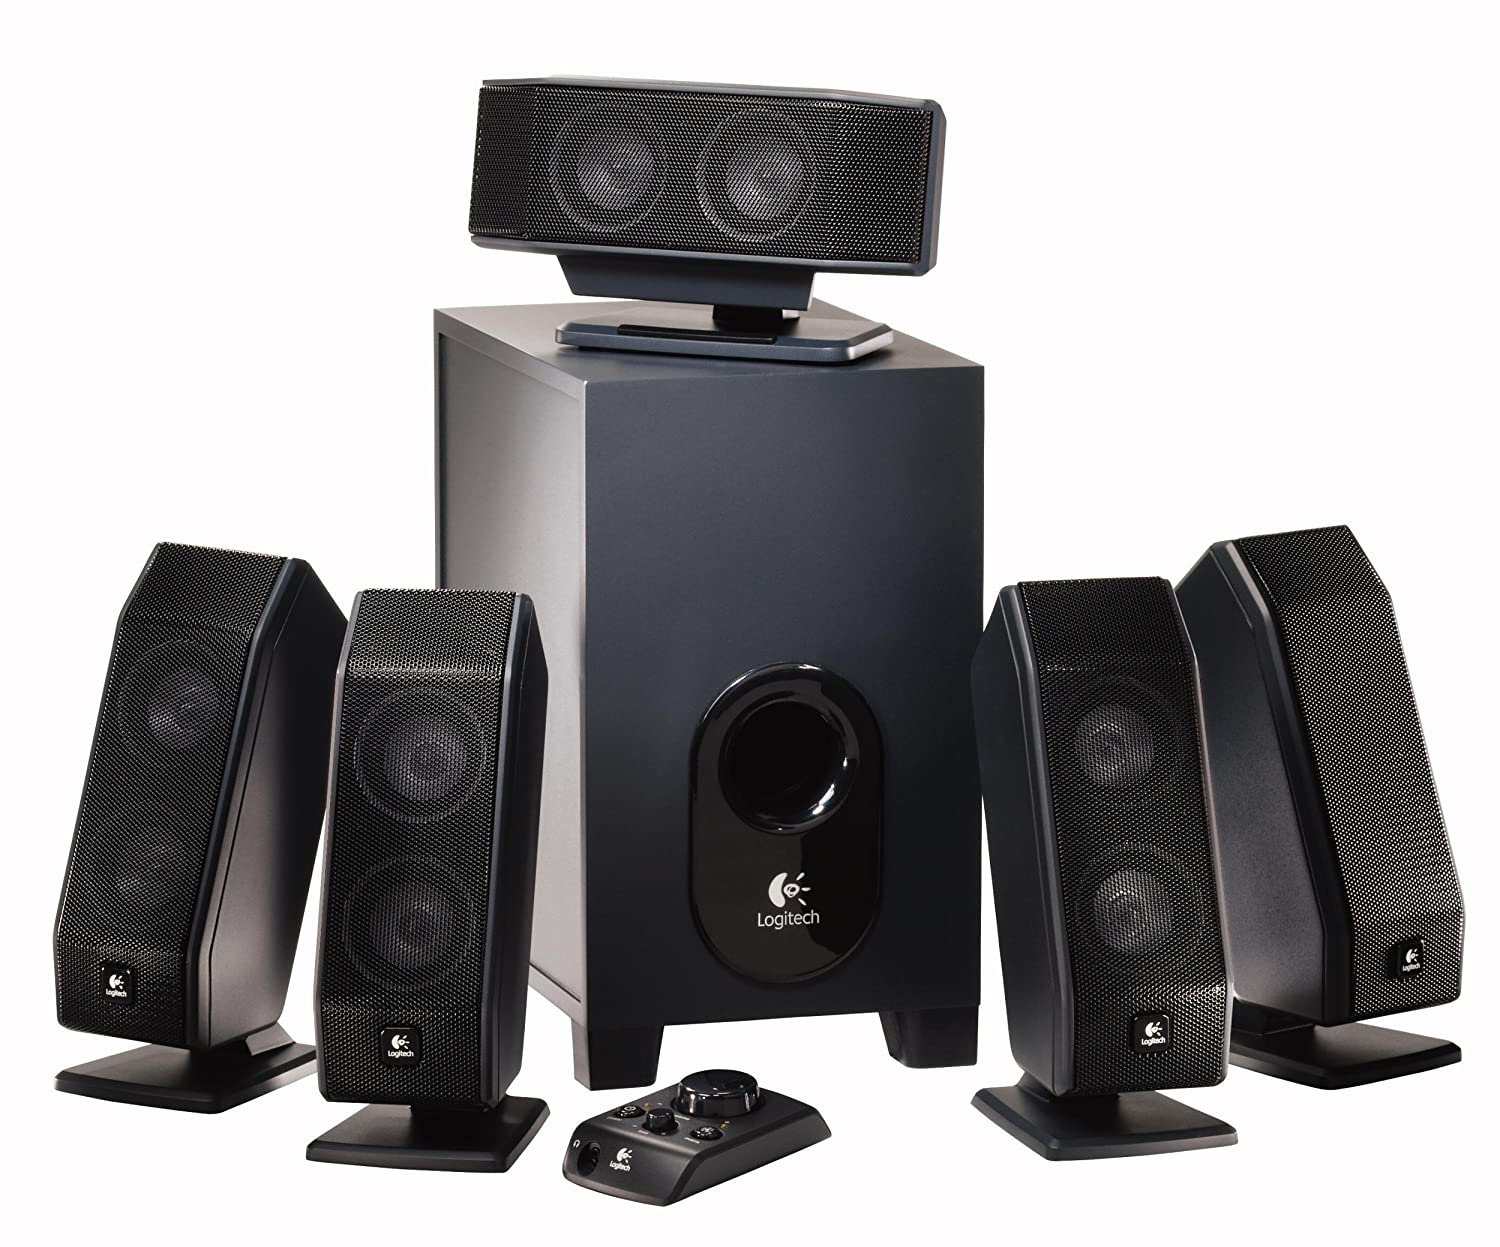 Amazon.com: Logitech X-540 5.1 Surround Sound Speaker System with  Subwoofer: Artist Not Provided: Home Audio & Theater